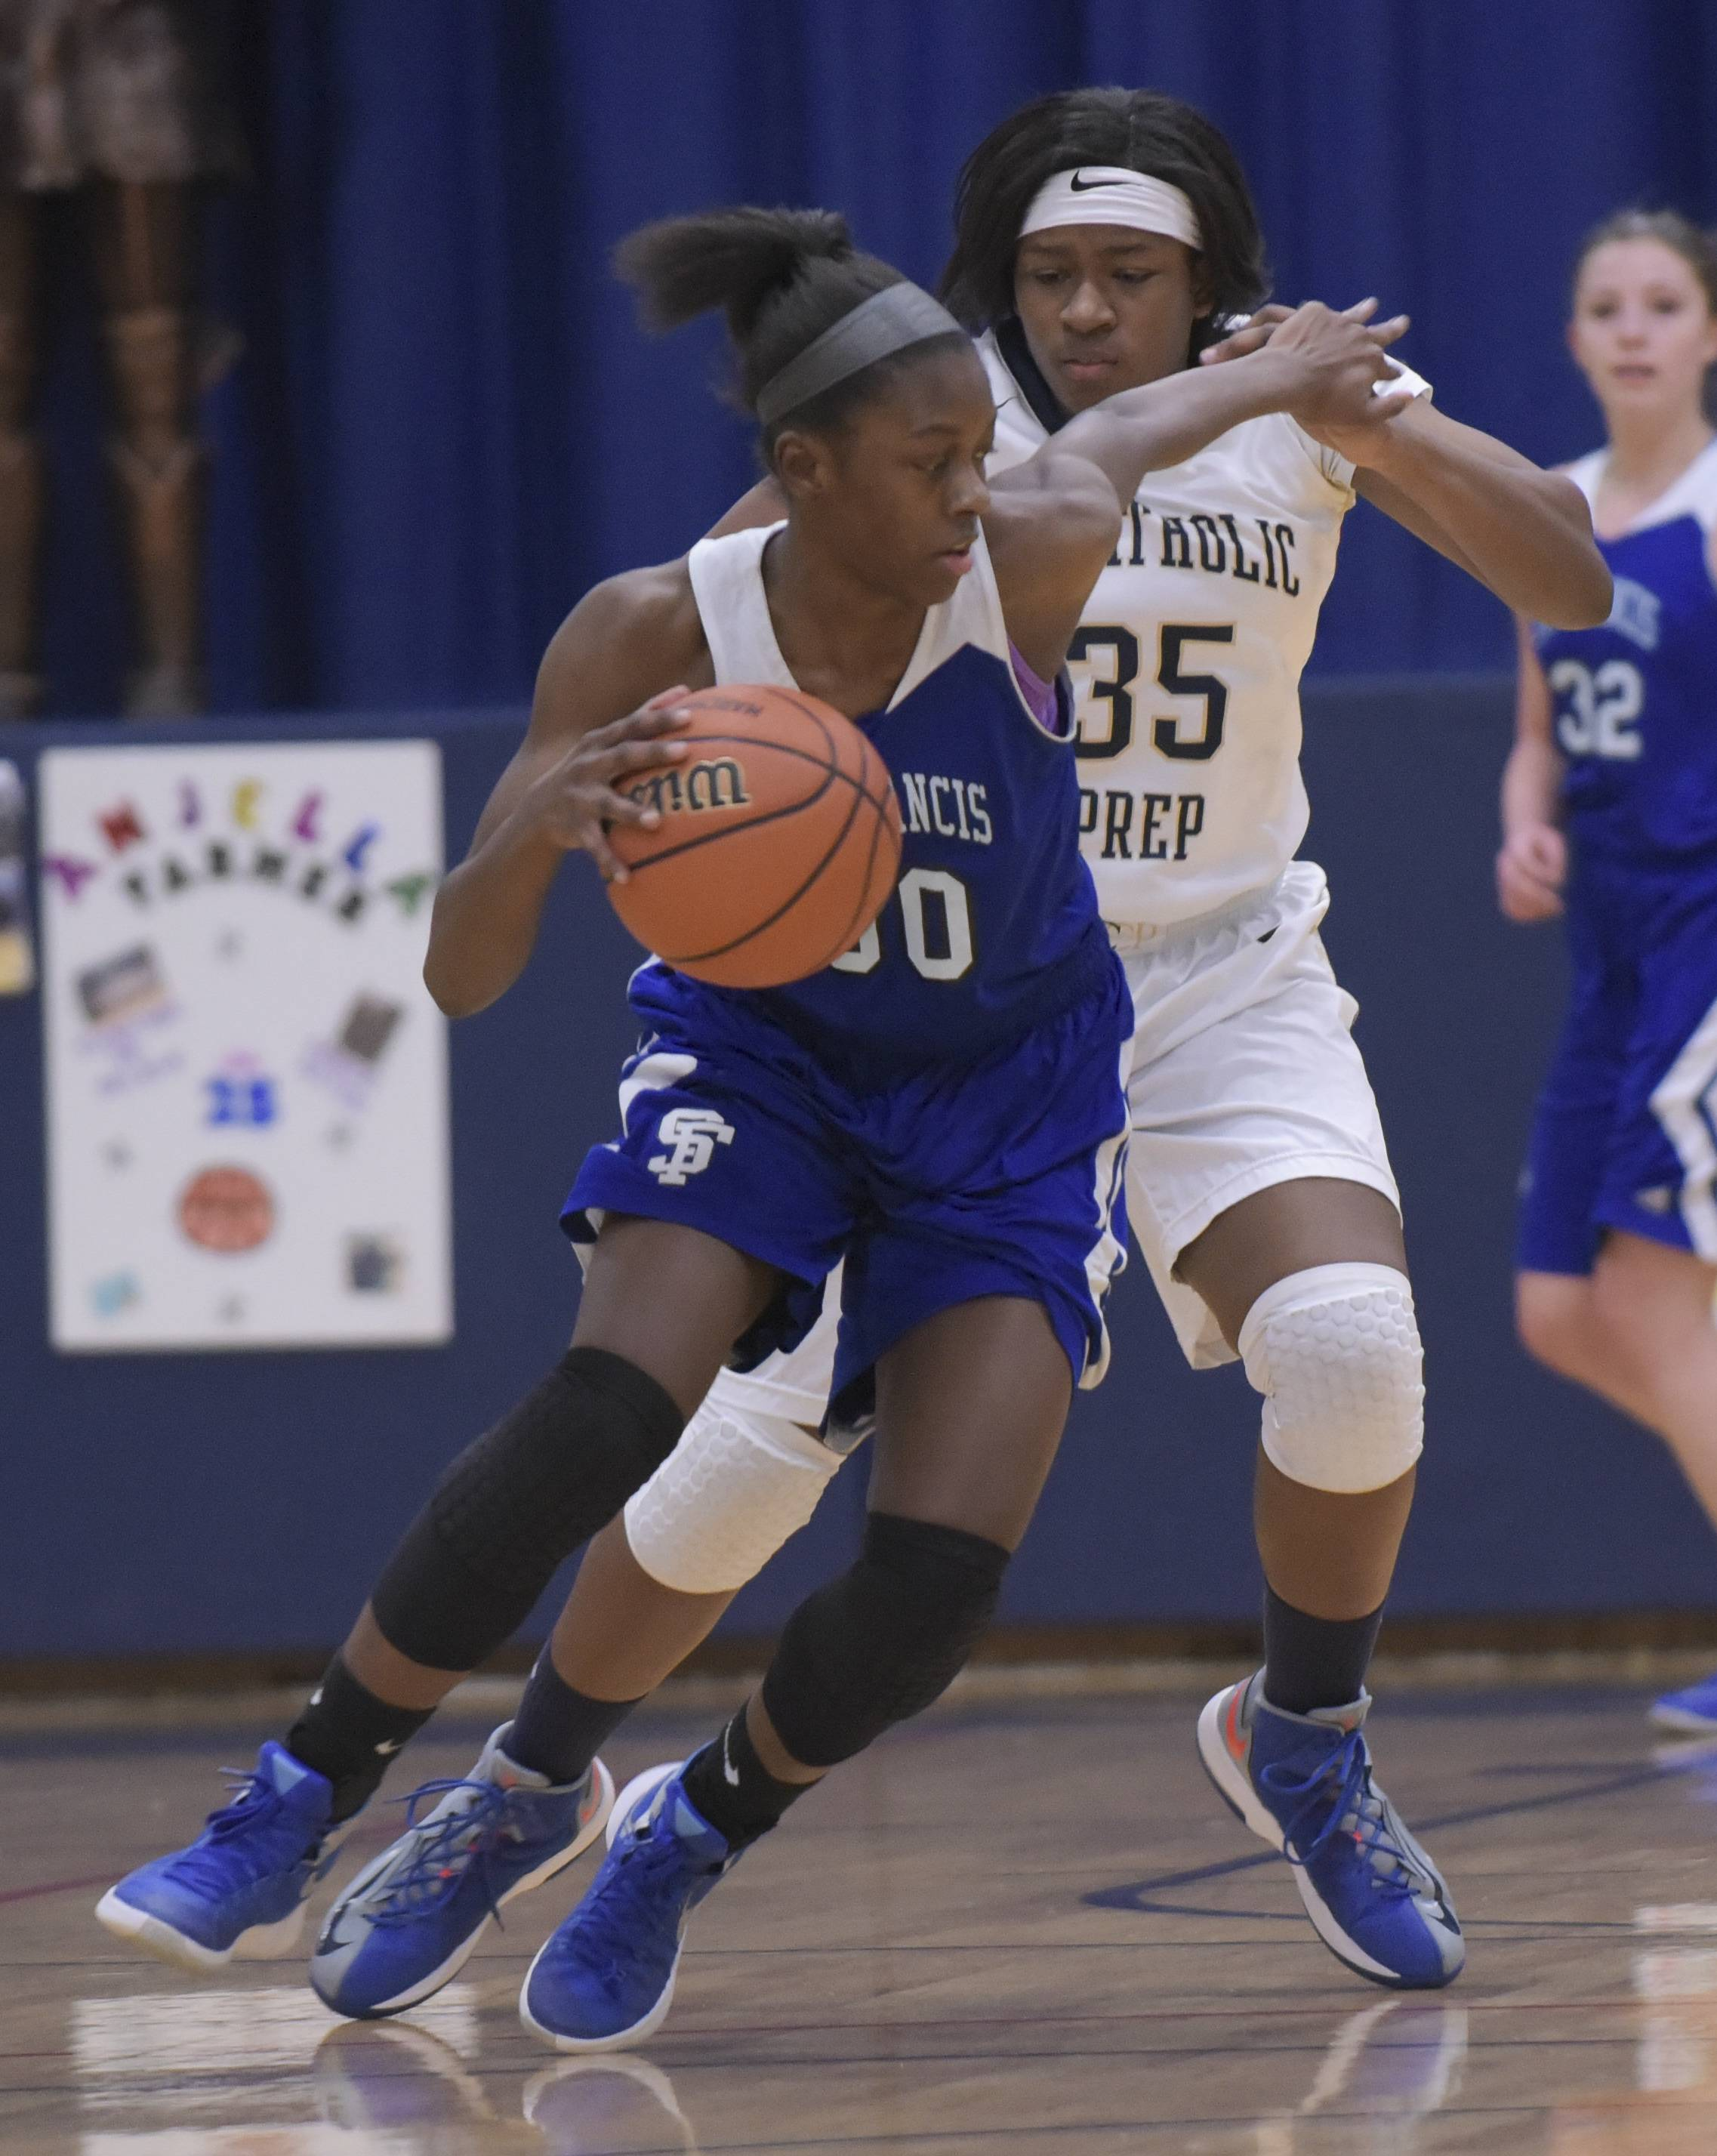 St. Francis' Antwainette Walker moves around I C Catholic Prep's Lillian Brown during varsity girls basketball in Elmhurst Monday.